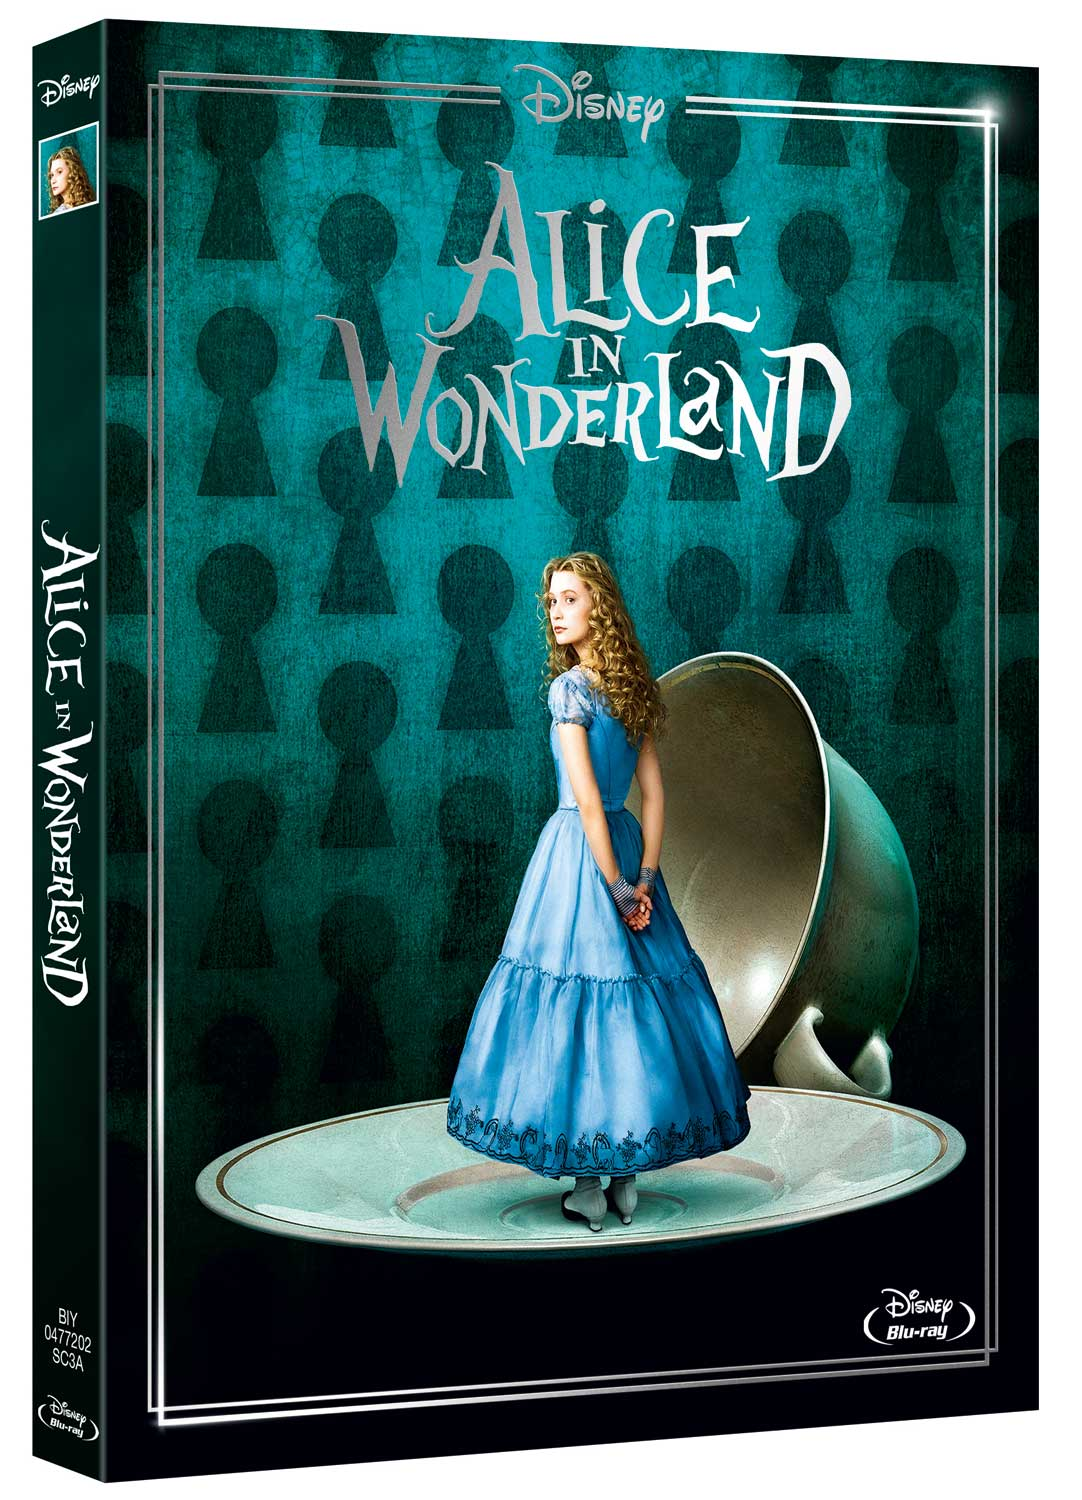 ALICE IN WONDERLAND (LIVE ACTION) (NEW EDITION) - BLU RAY